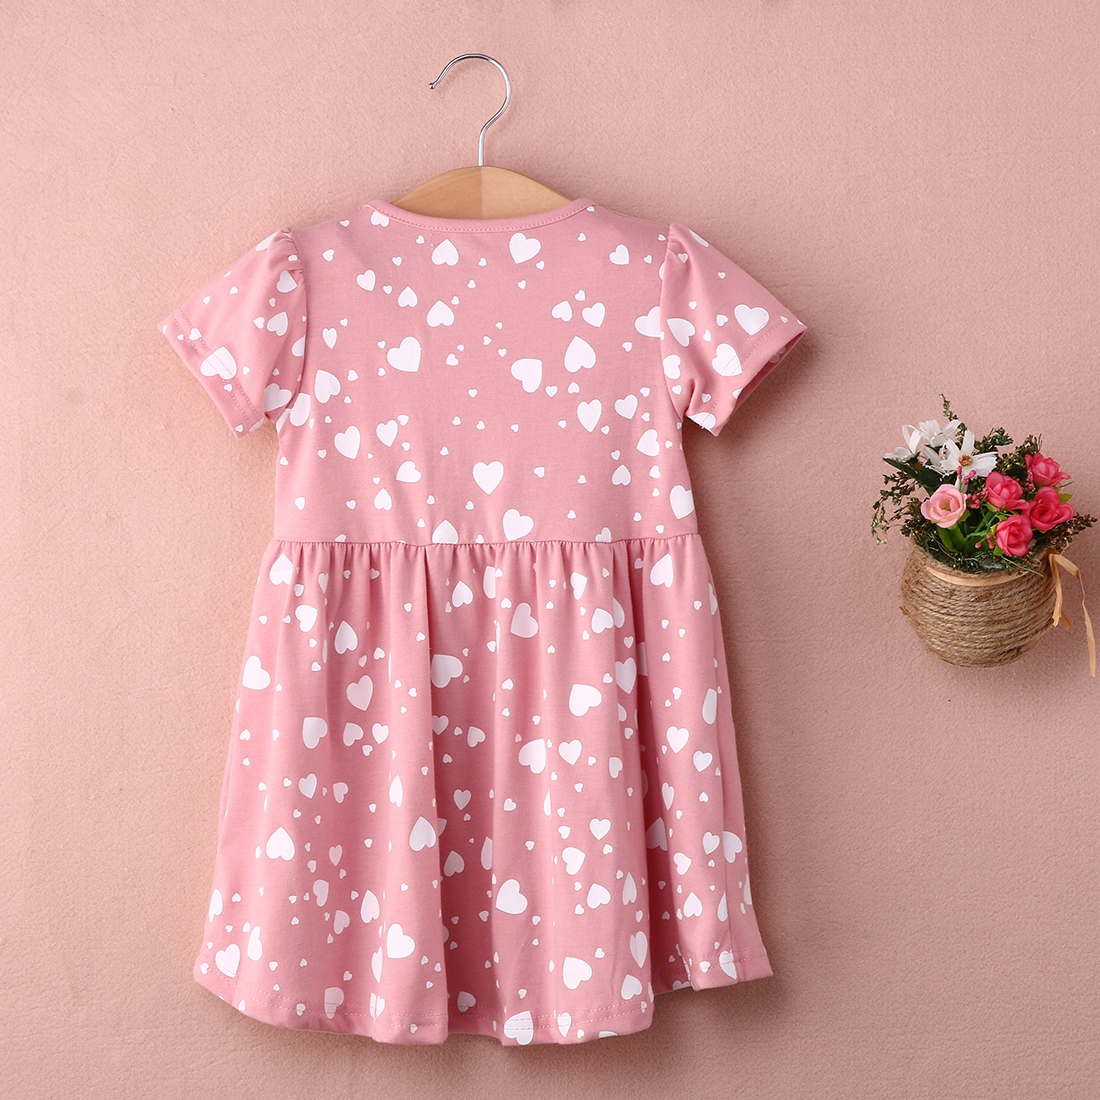 2018 Bnwt Toddler Kids Girls Summer Dress Princess Short Sleeve Floral Casual Beach Mini Dresses by Pudcoco